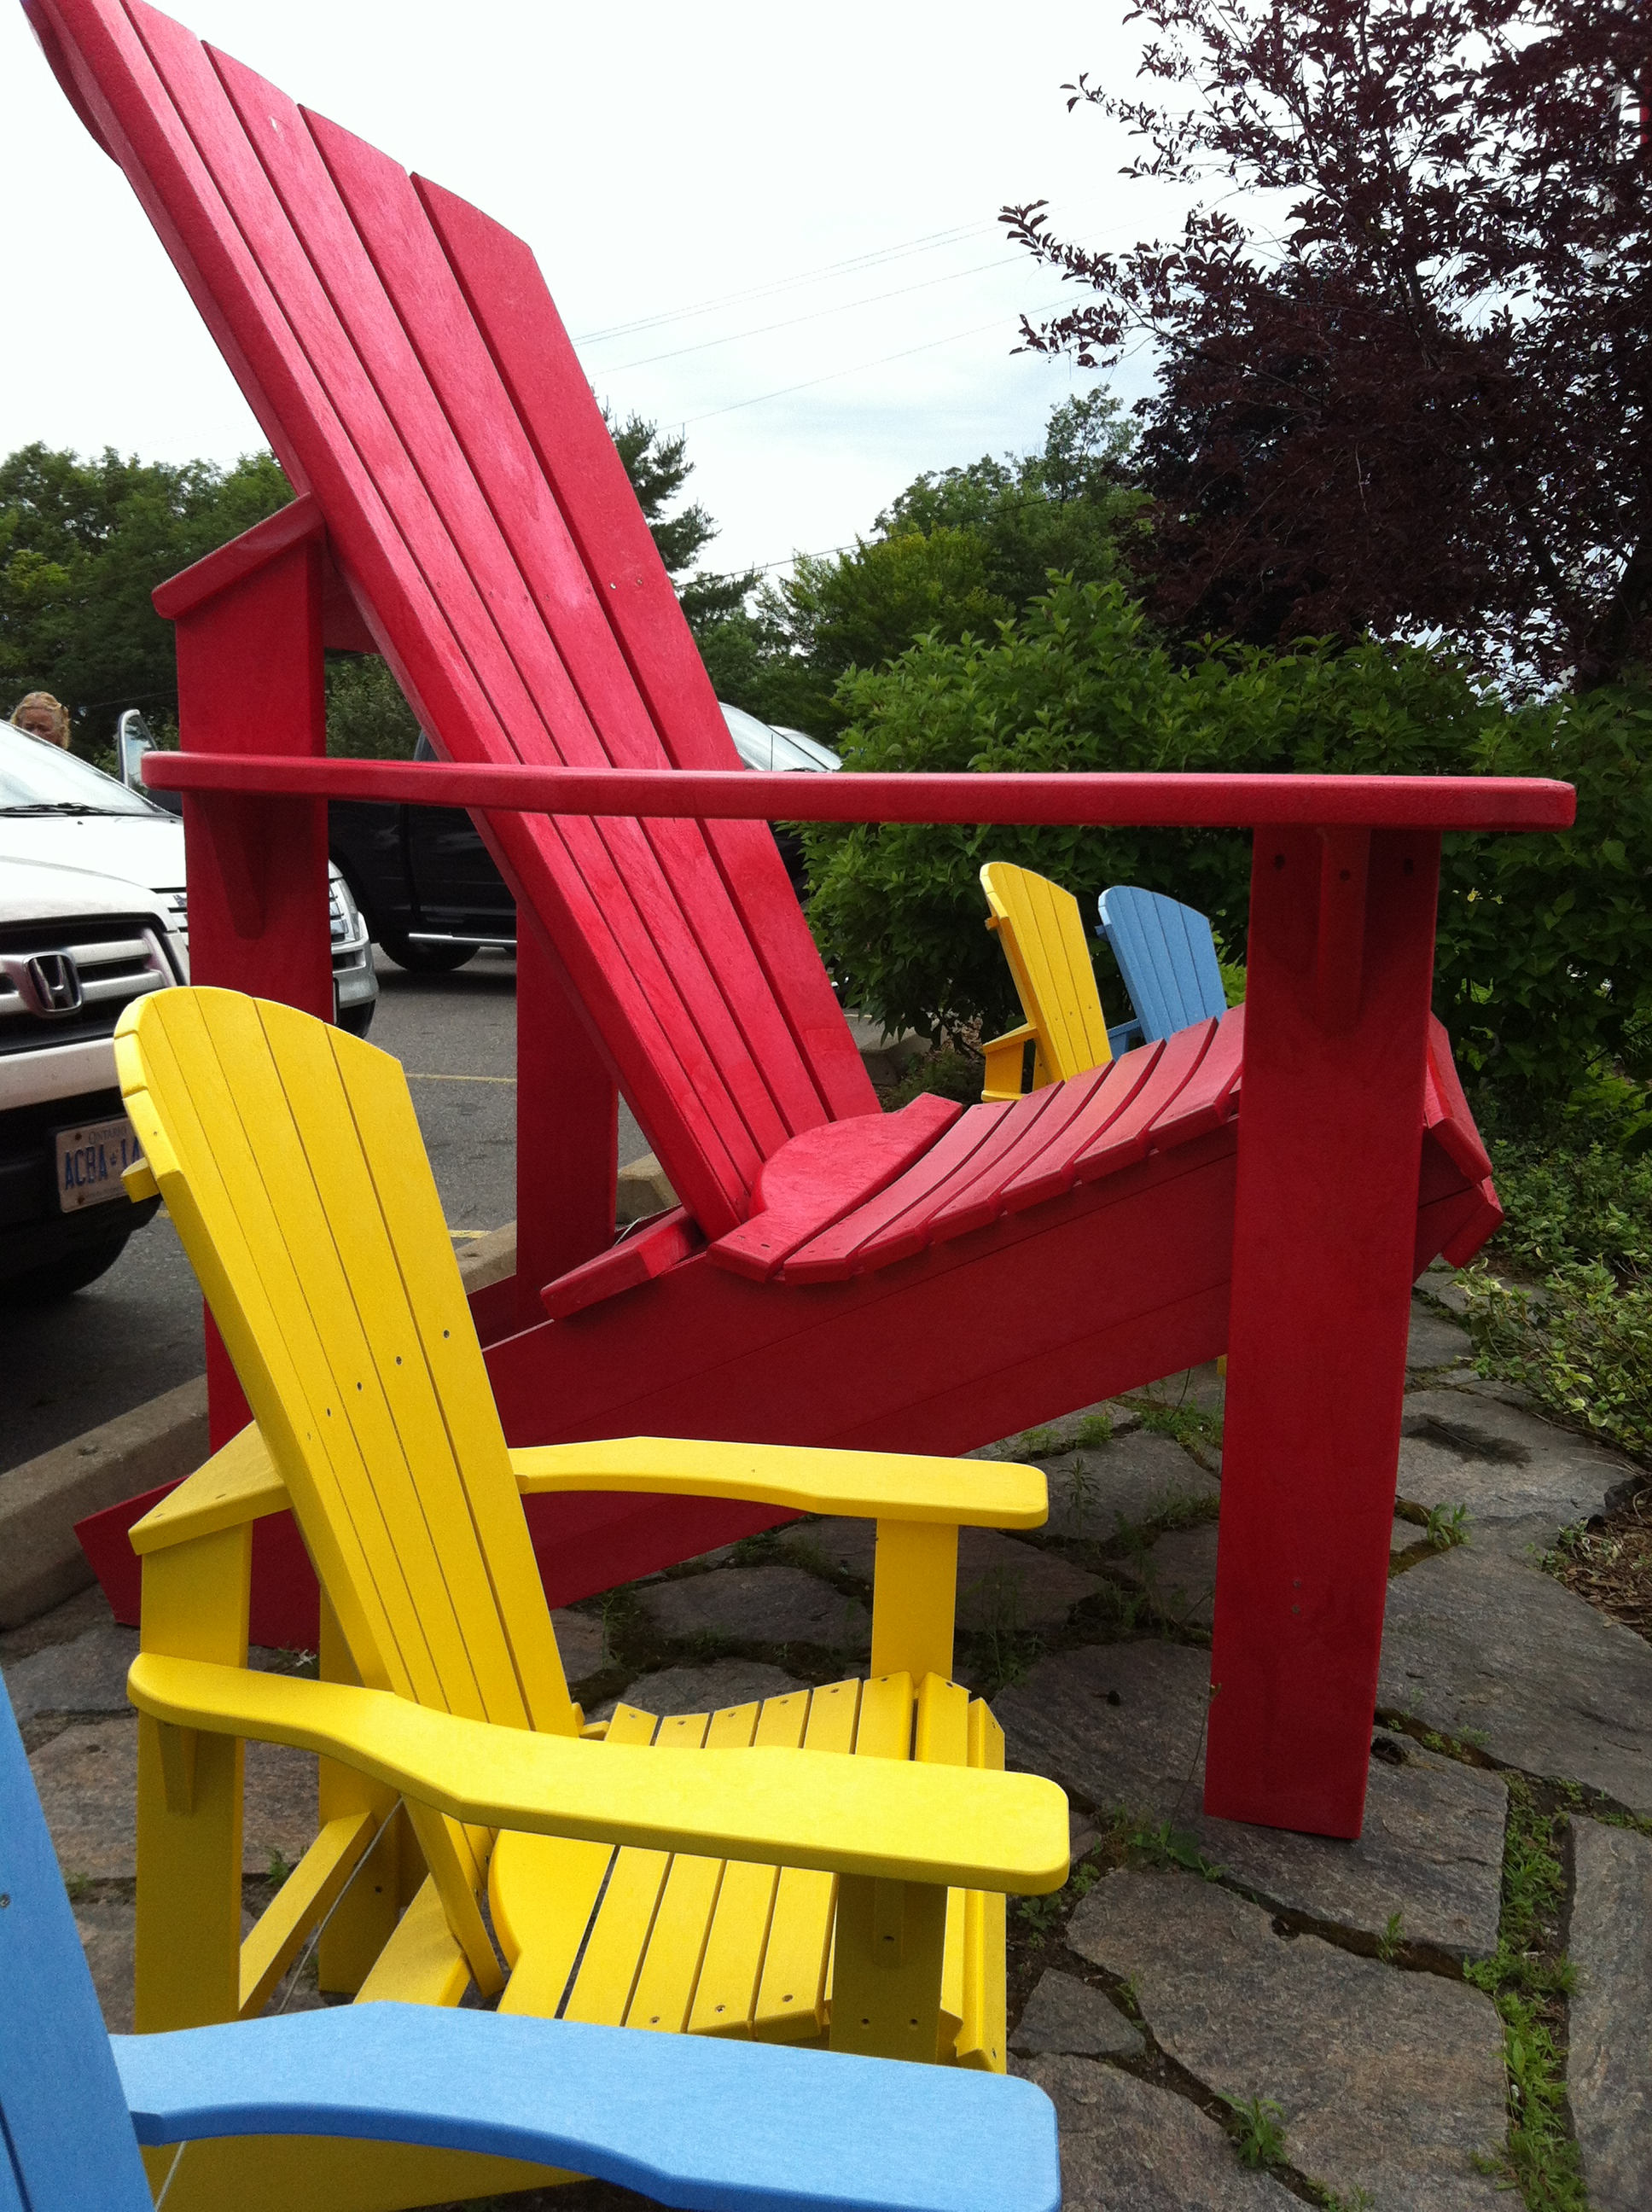 This Year The Chairs Are Very Colorful In Muskoka